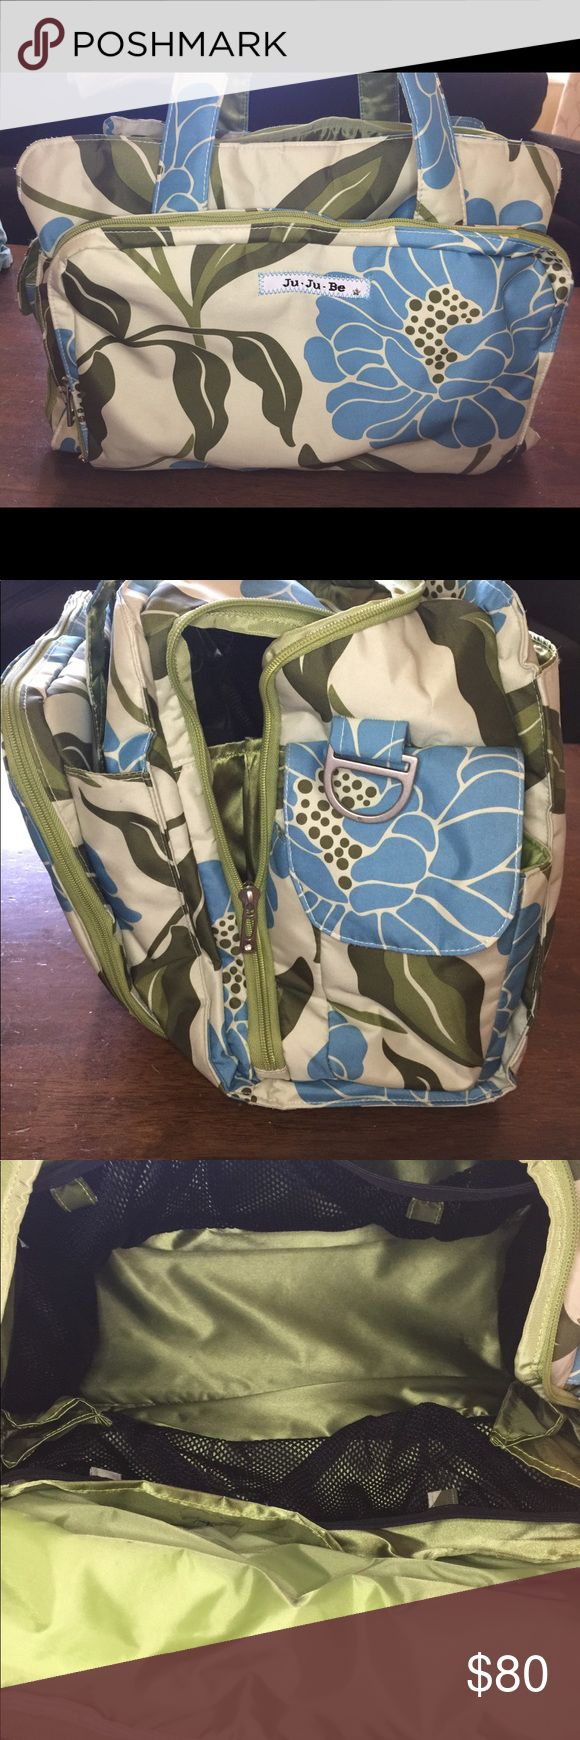 Jujube Be Prepared Diaper Bag Never carried. It was packed and used as my car emergency diaper bag. Super clean inside and out. JuJuBe Bags Baby Bags